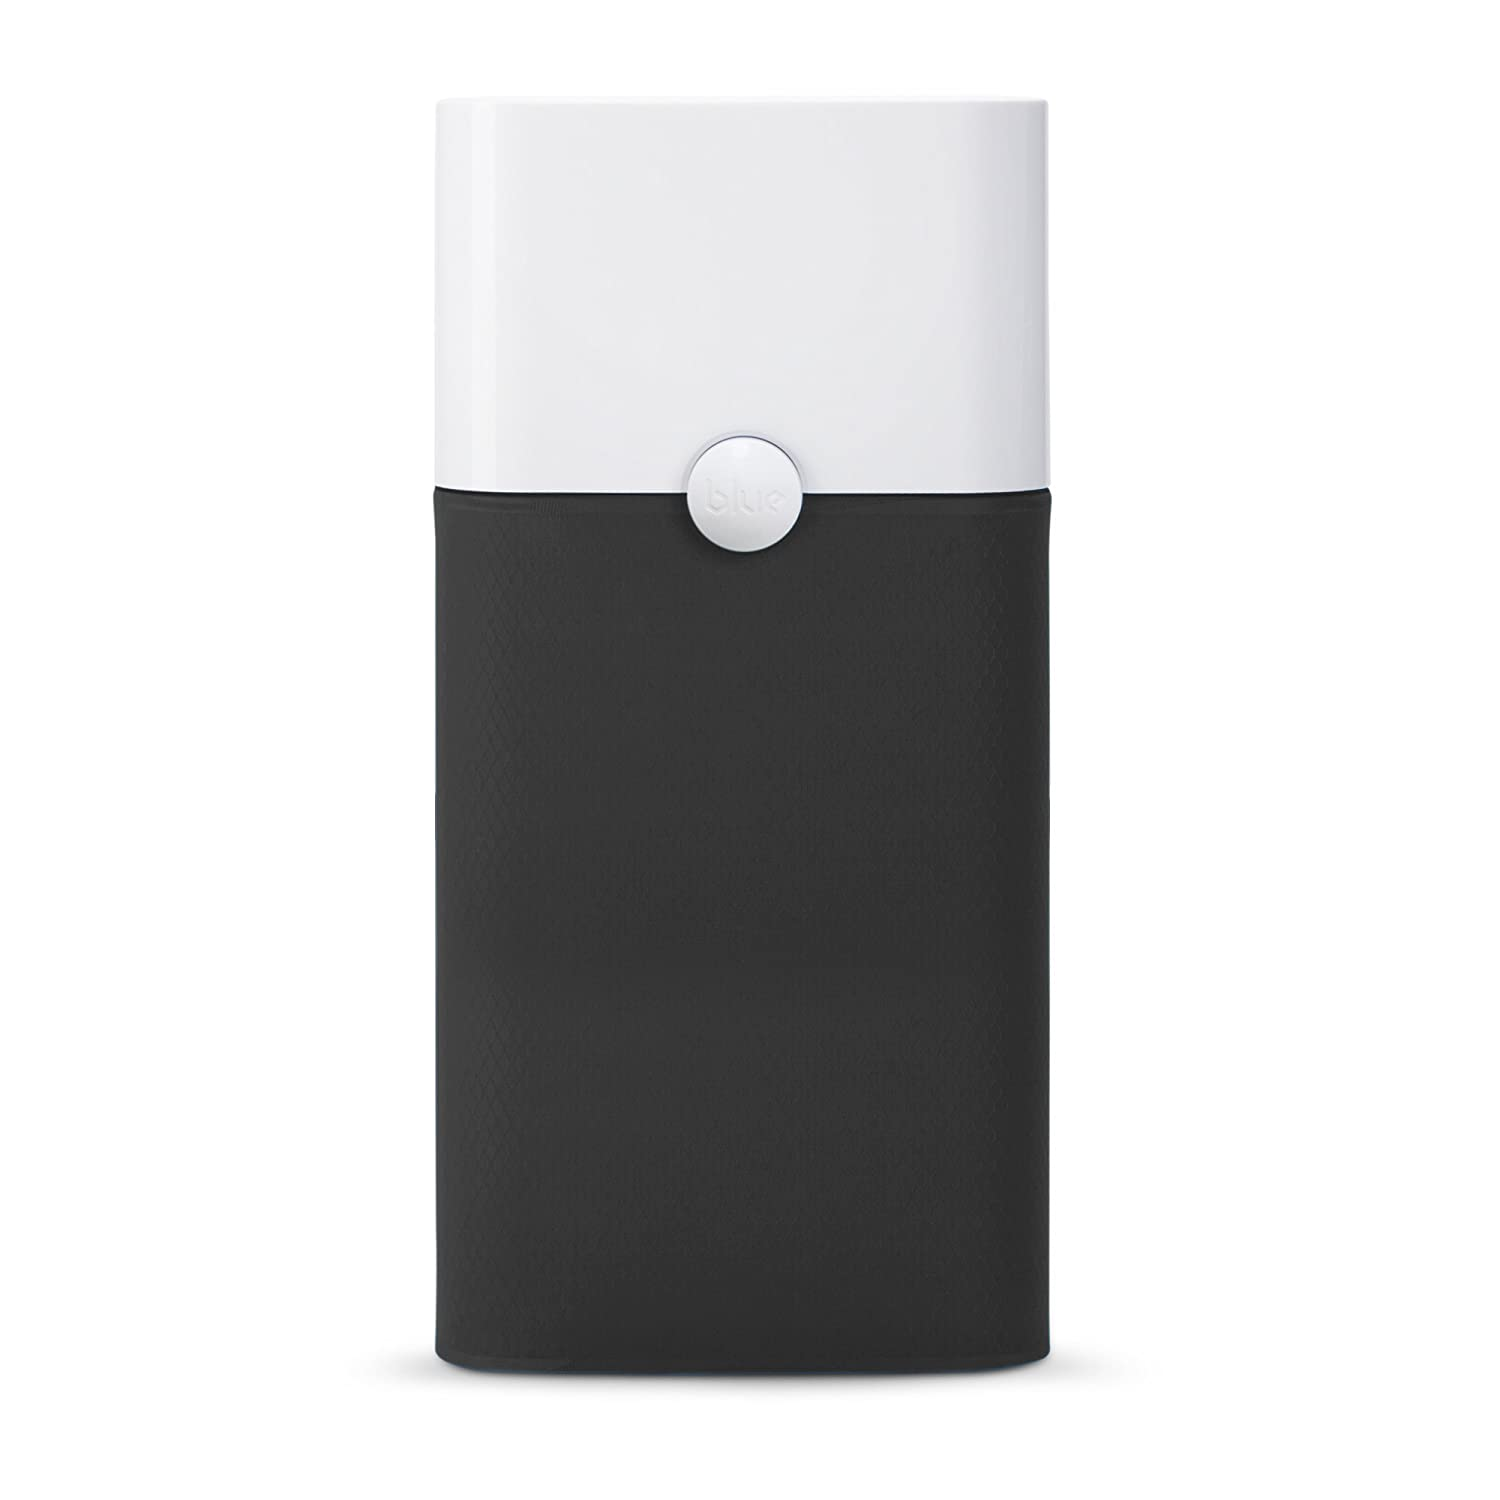 Blue Pure 121 Air Purifier with Particle and Carbon Filter for Allergen and Odor Reduction, Two Washable Pre-Filters, Large Rooms, by Blueair